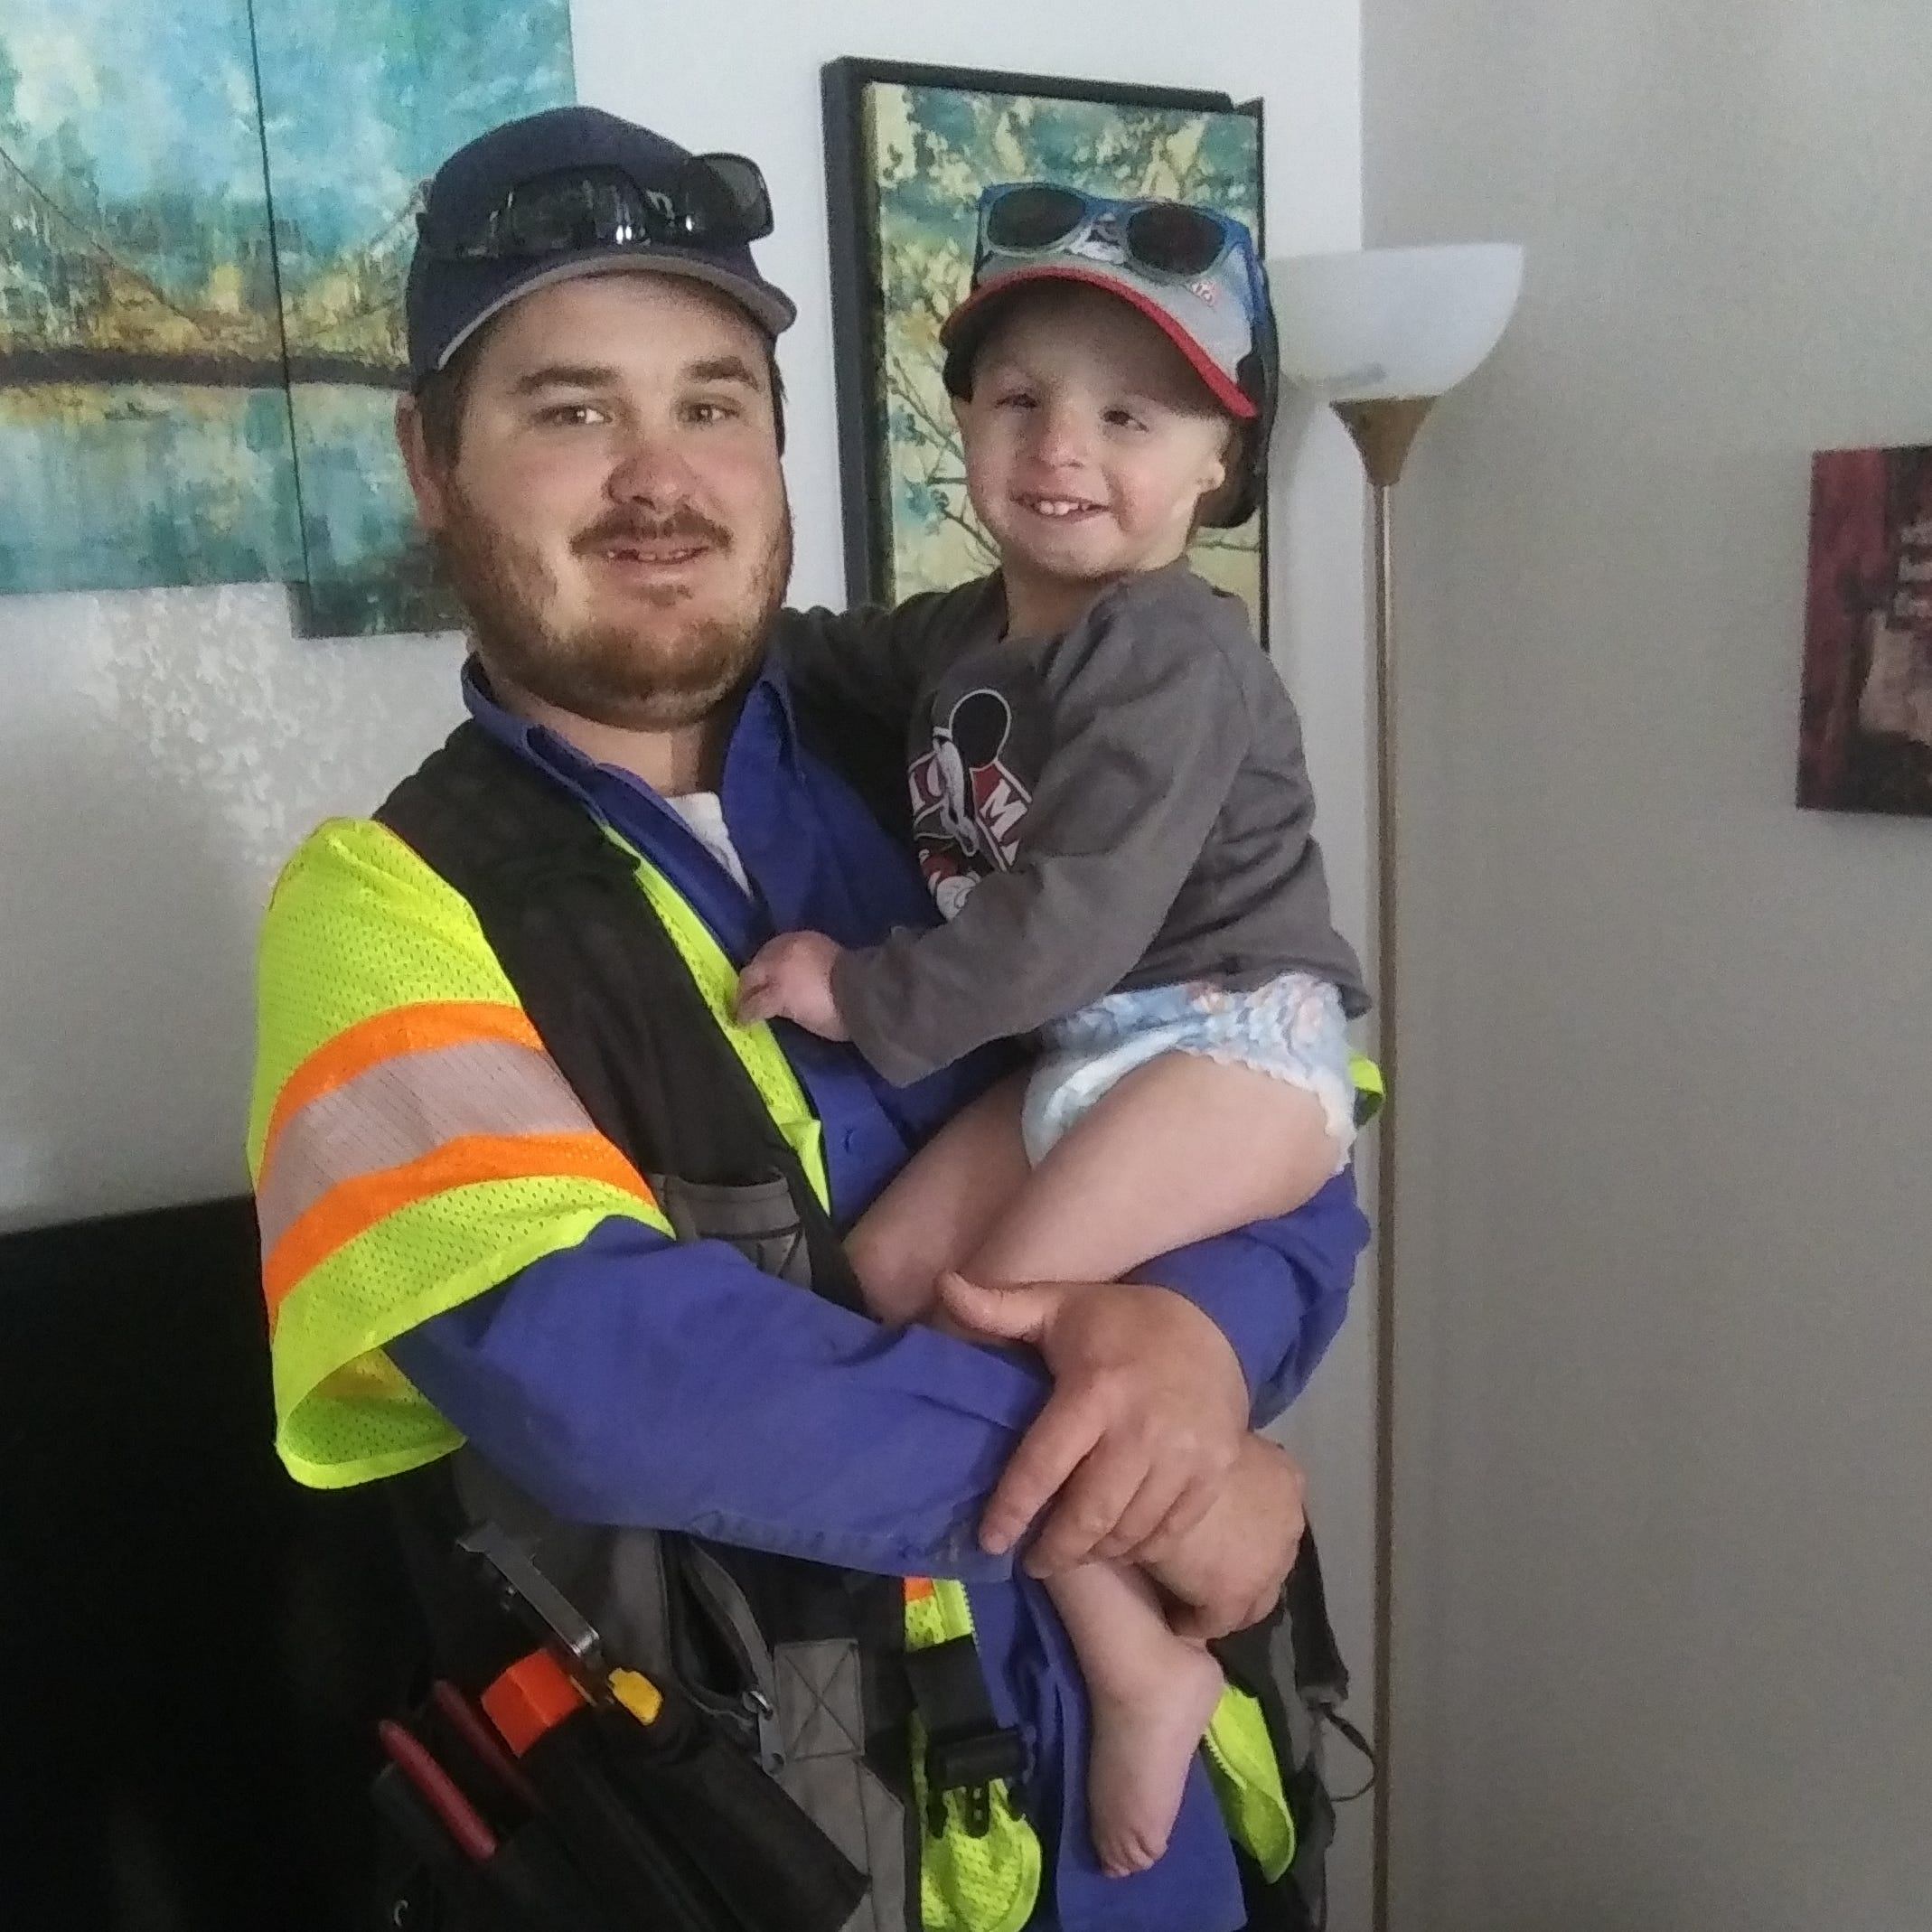 Internet serviceman connects with Gardnerville boy born with medical condition